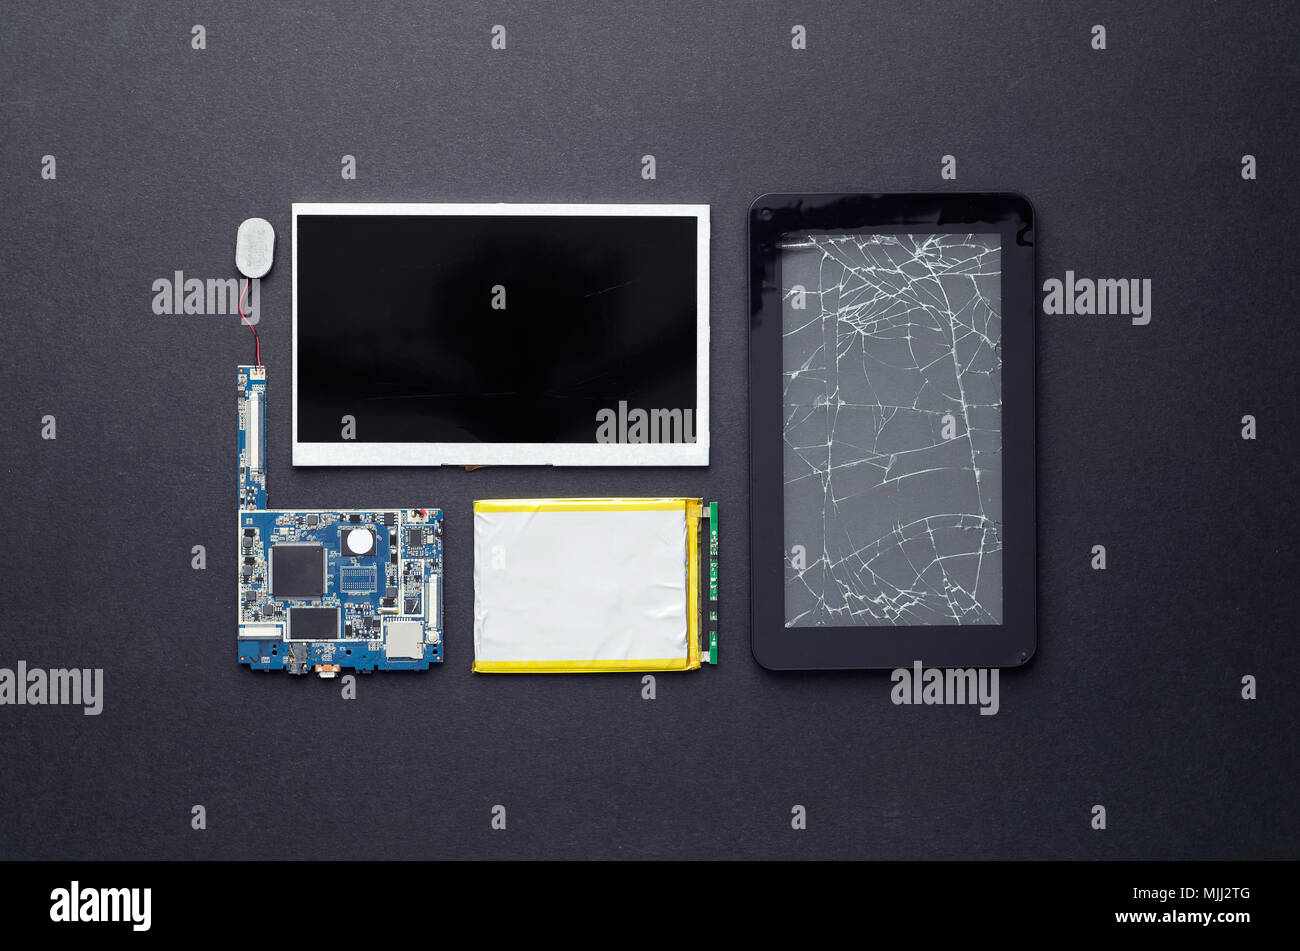 Components of a broken tablet organized over black background, top view - Stock Image